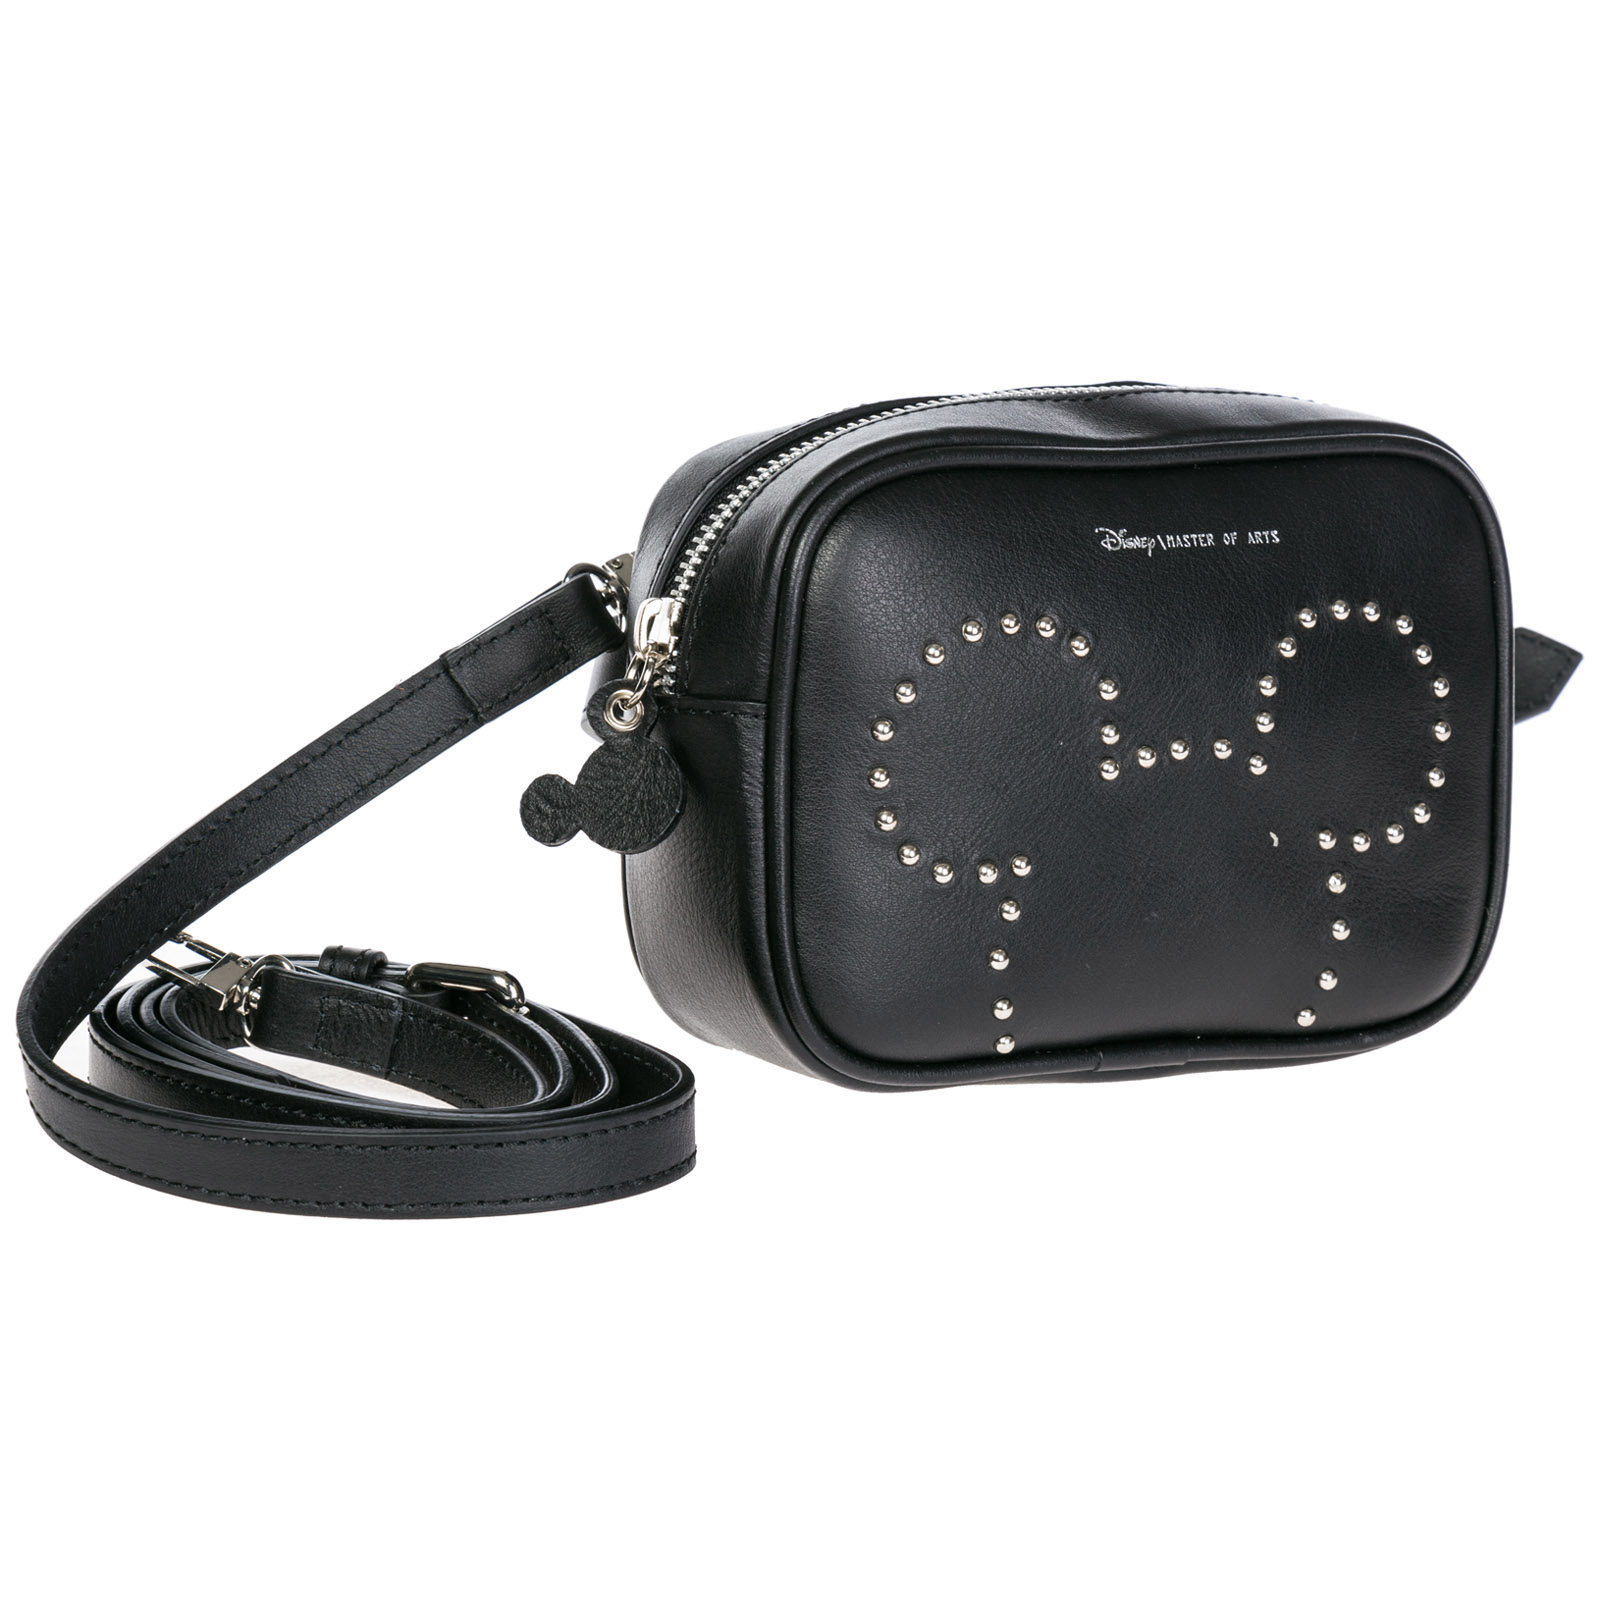 4f2e9b90ec7e ... Women's leather belt bum bag hip pouch disney mickey mouse